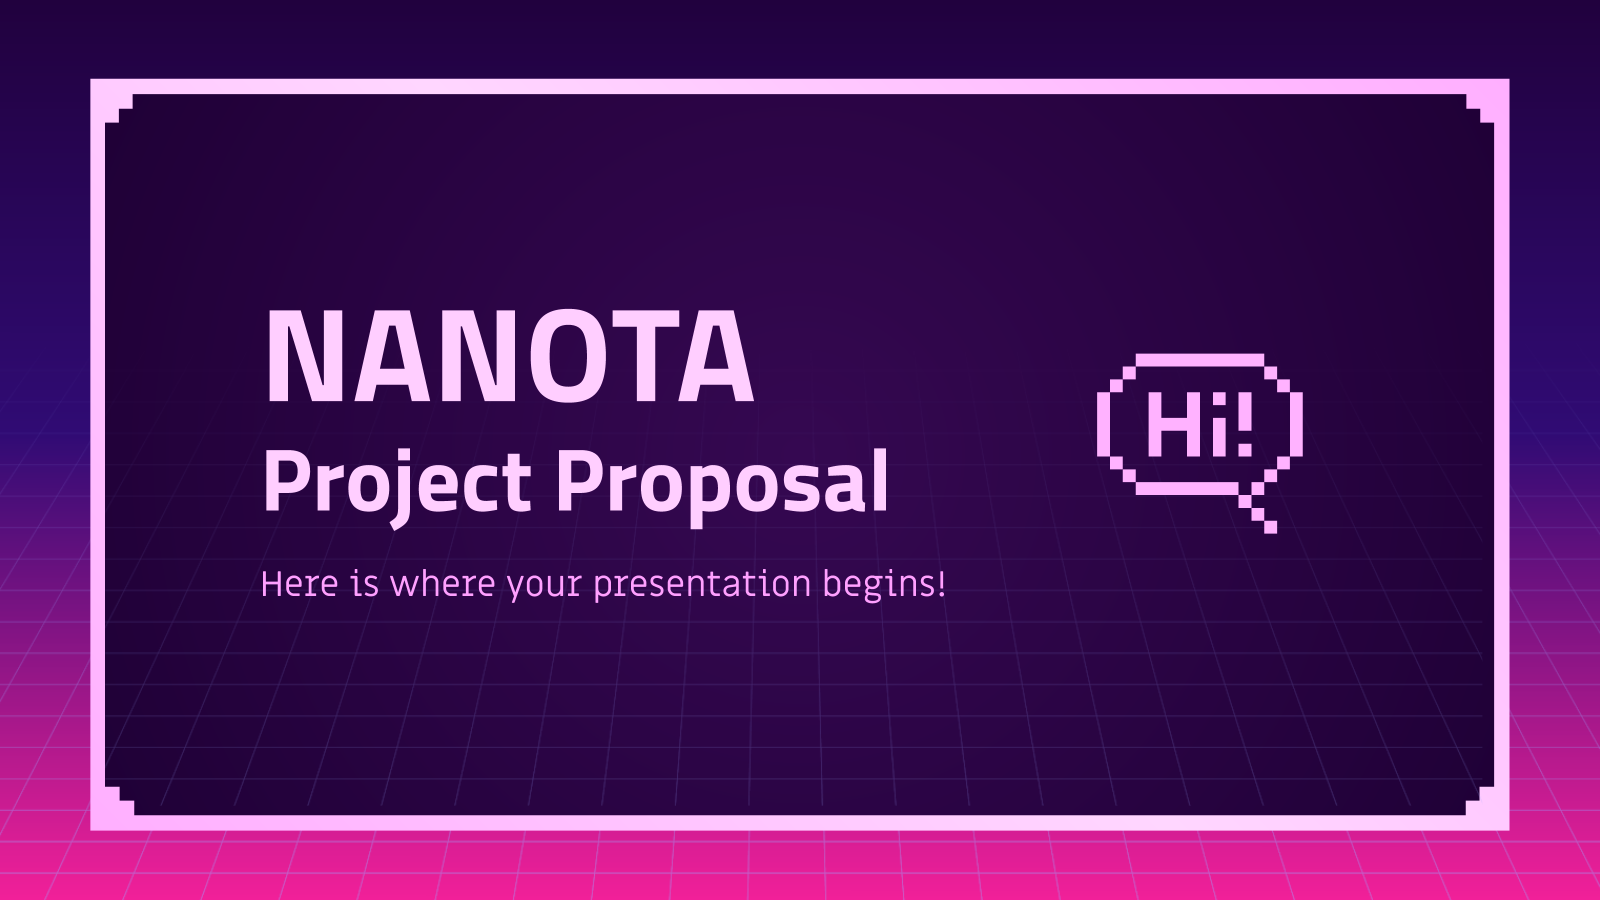 Nanota Project Proposal presentation template